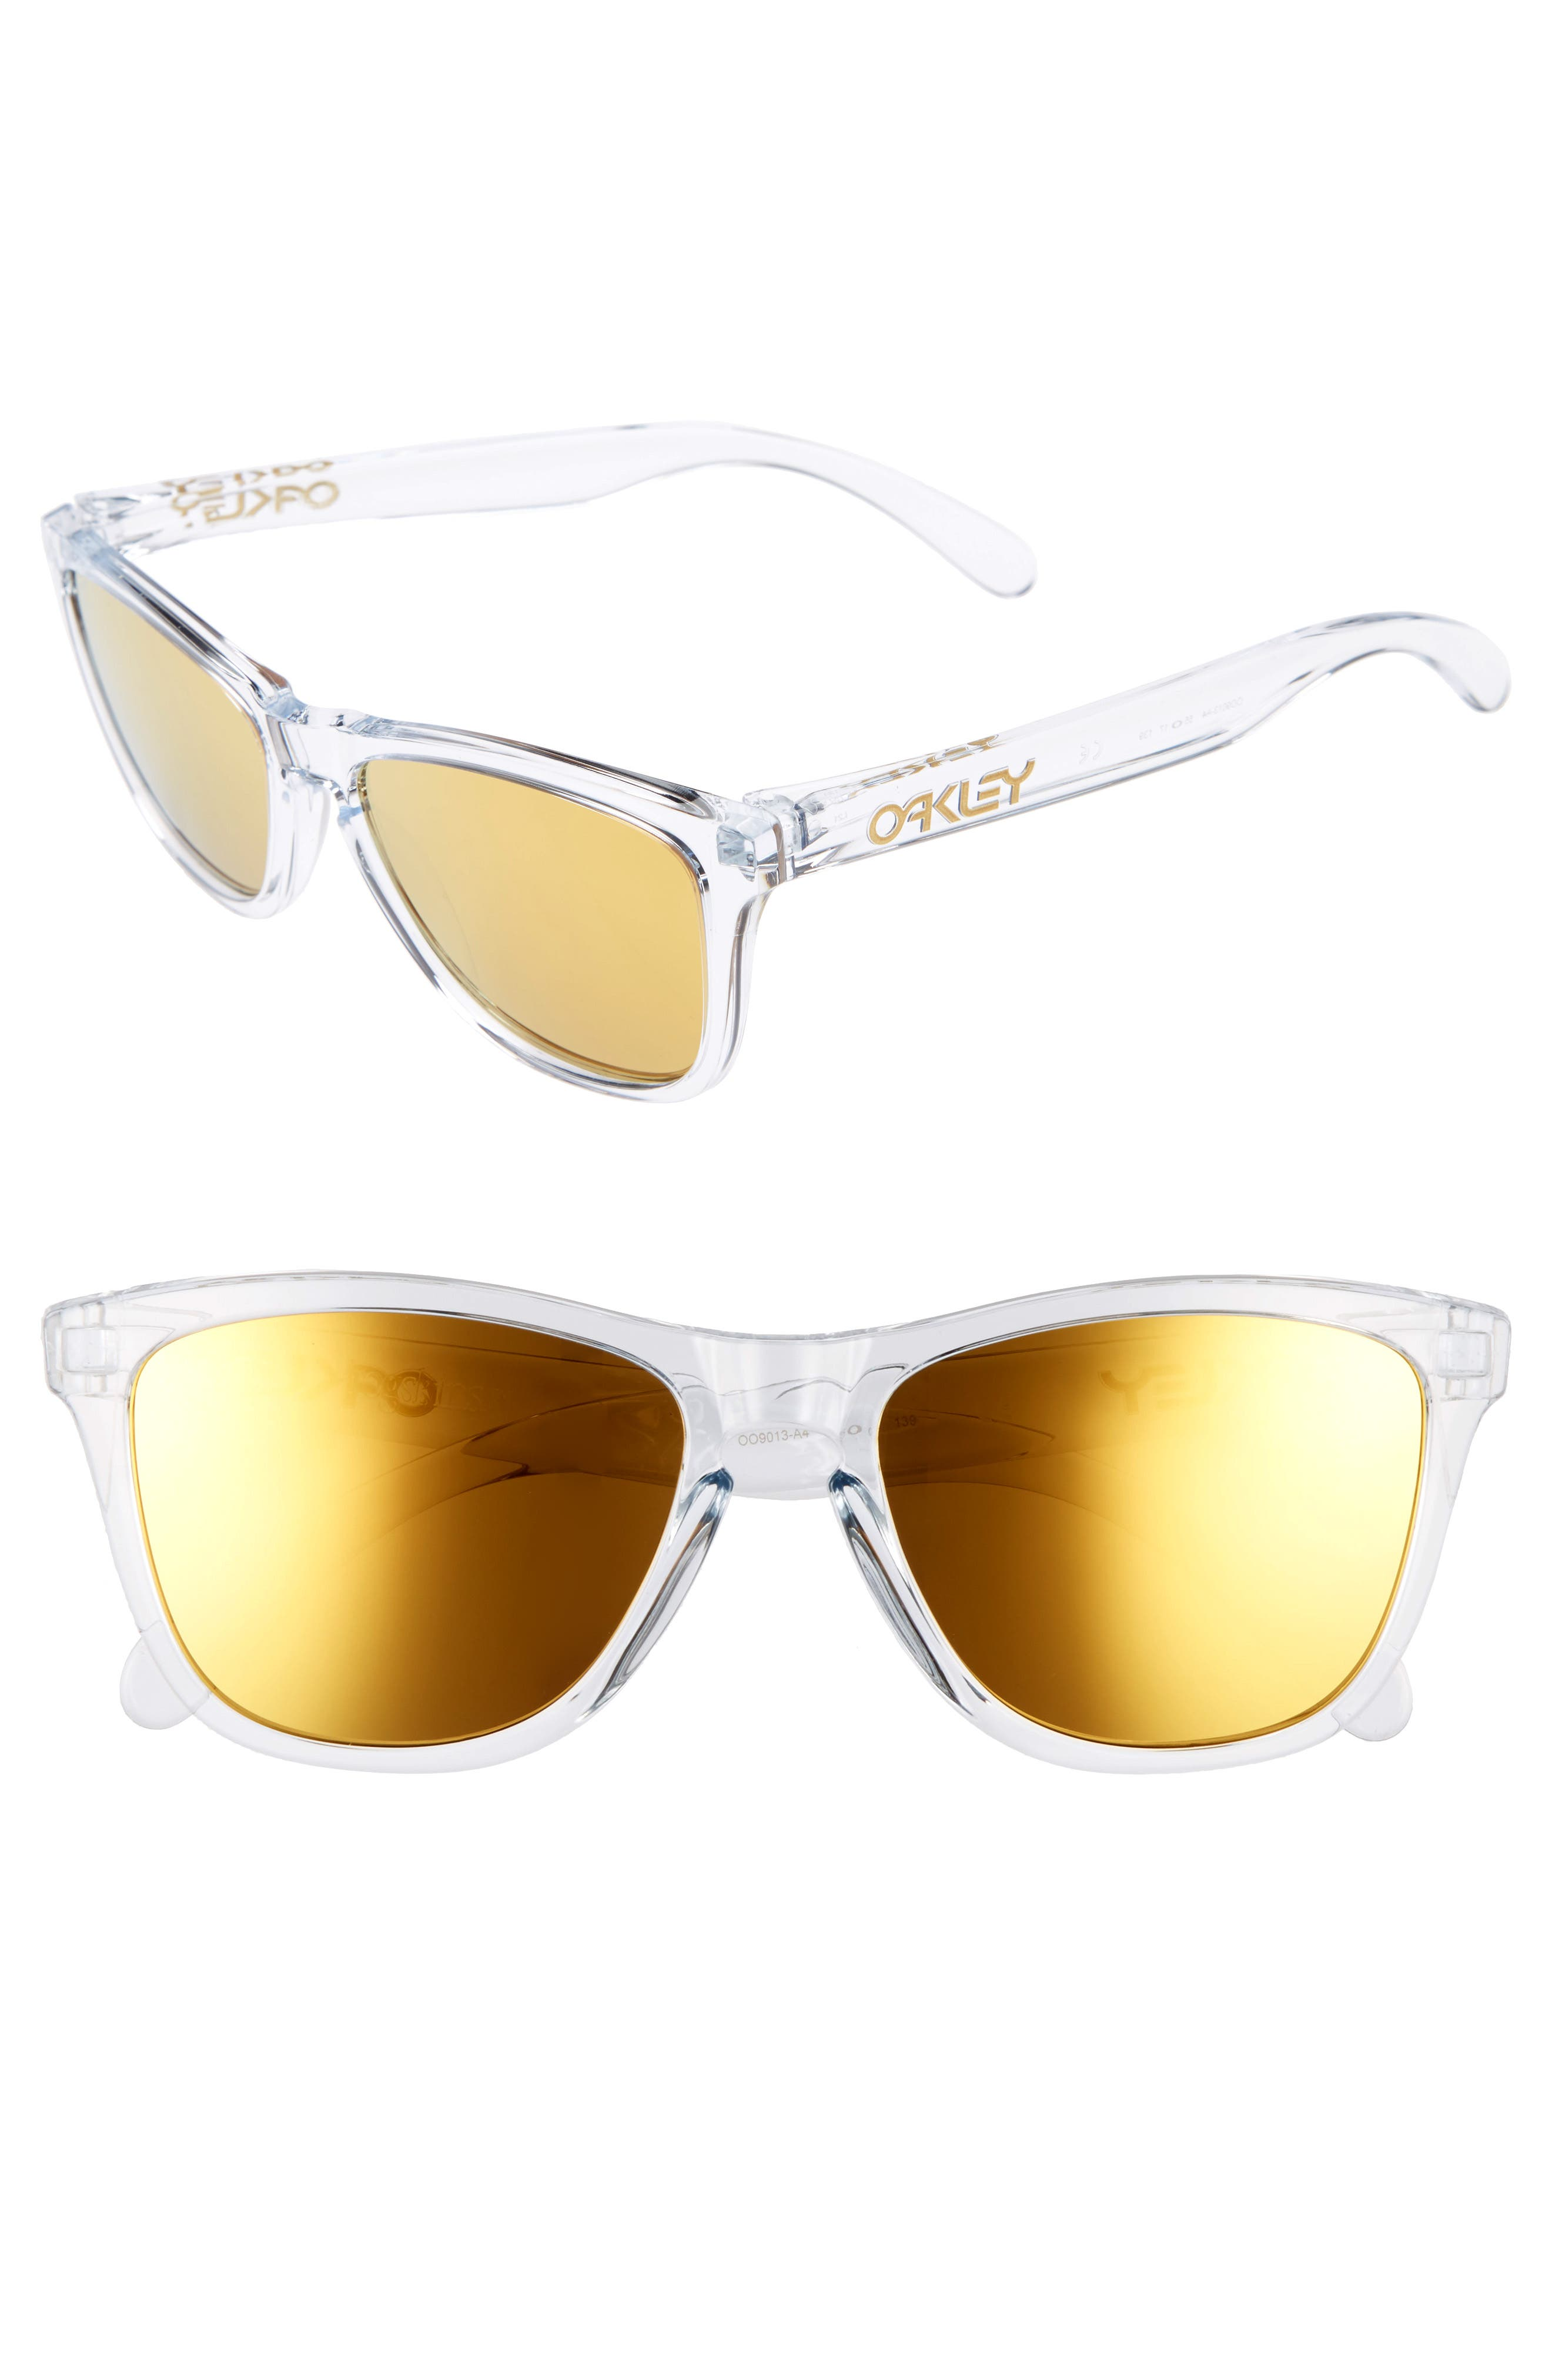 Frogskins<sup>®</sup> 55mm Sunglasses,                         Main,                         color, 24K Iridescent